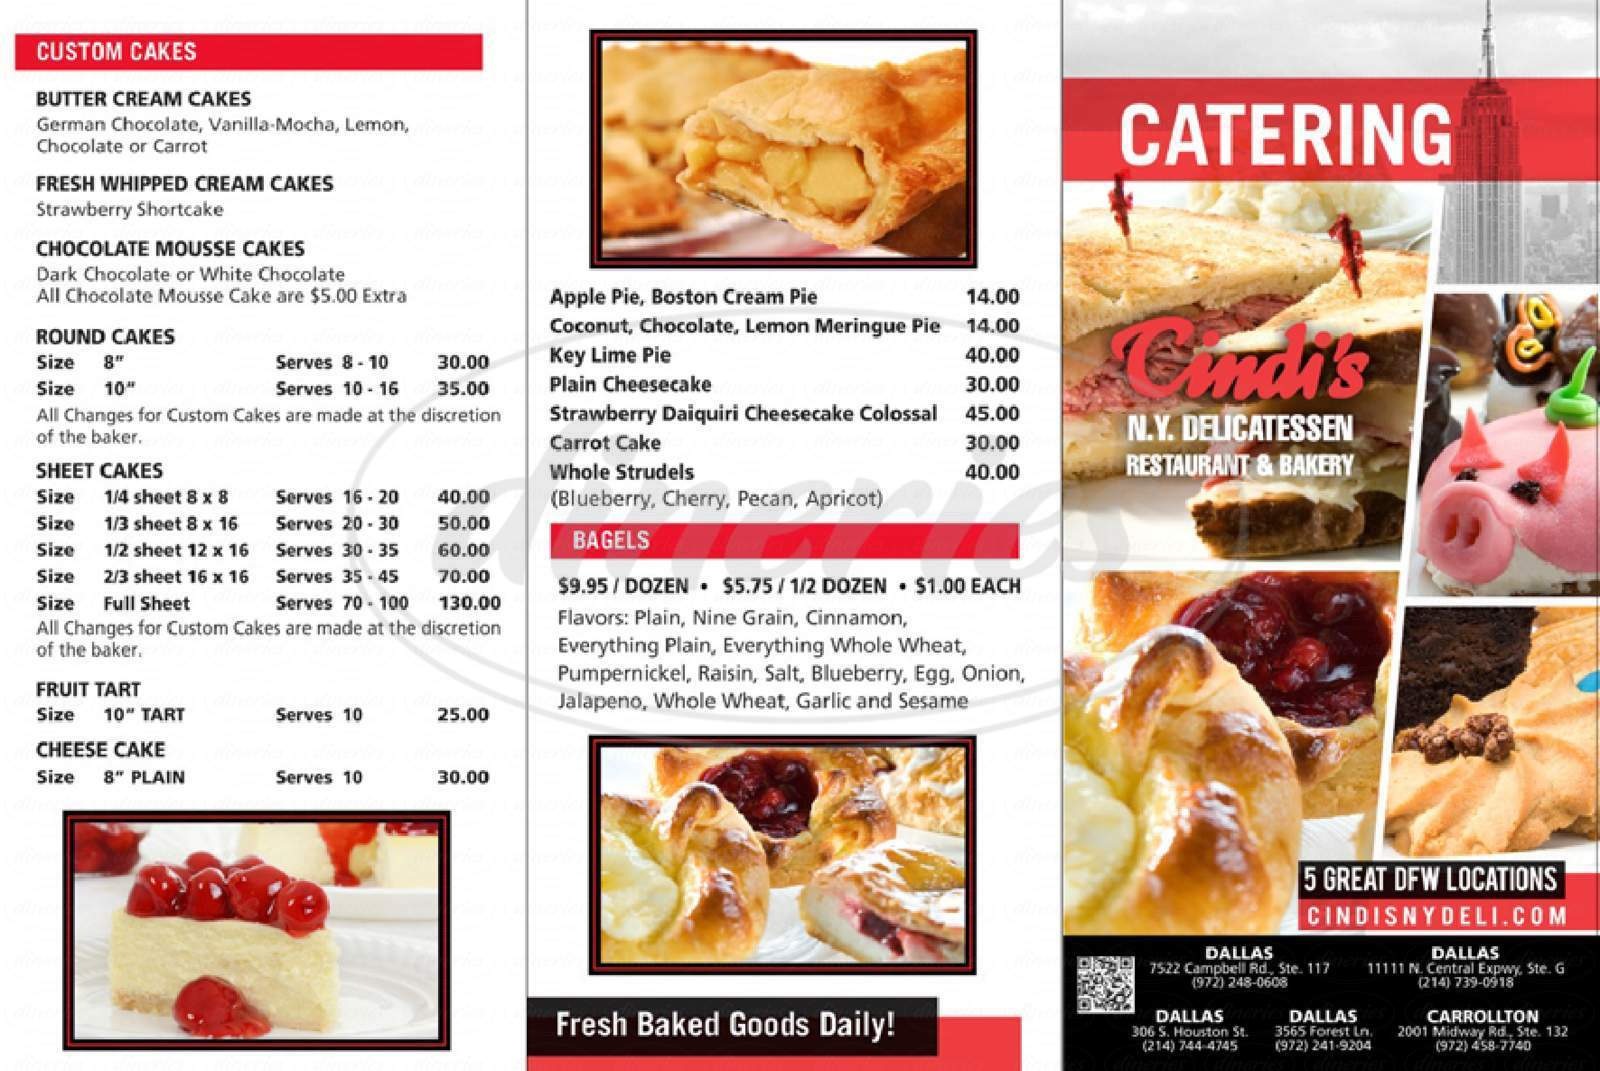 menu for Cindi's N.Y. Delicatessen, Restaurant & Bakery